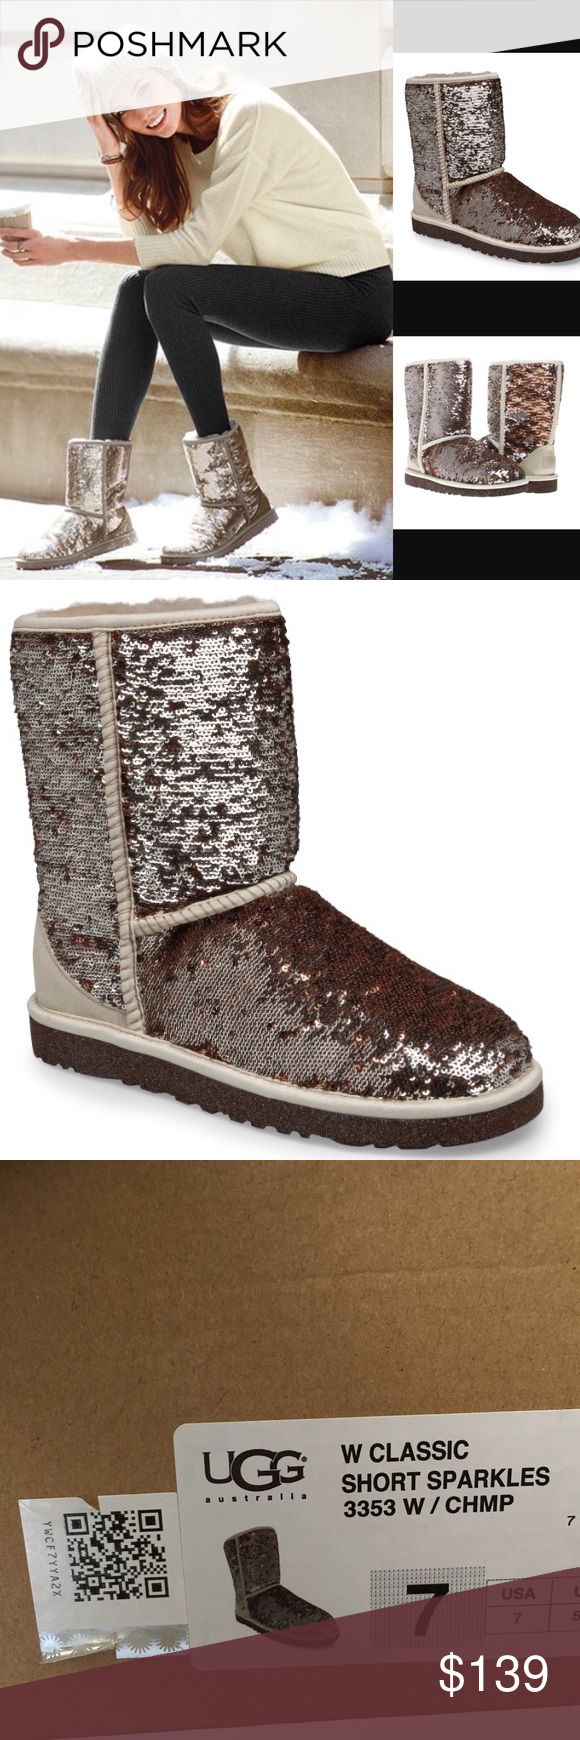 UGG Classic Short Sparkle Boot Size 7 NWT and comes with original box, no flaws. These classic uggs give an extra sparkle to your winter wardrobe. Fits true to Size fits 7-7.5. No trades, offers welcome. UGG Shoes Winter & Rain Boots